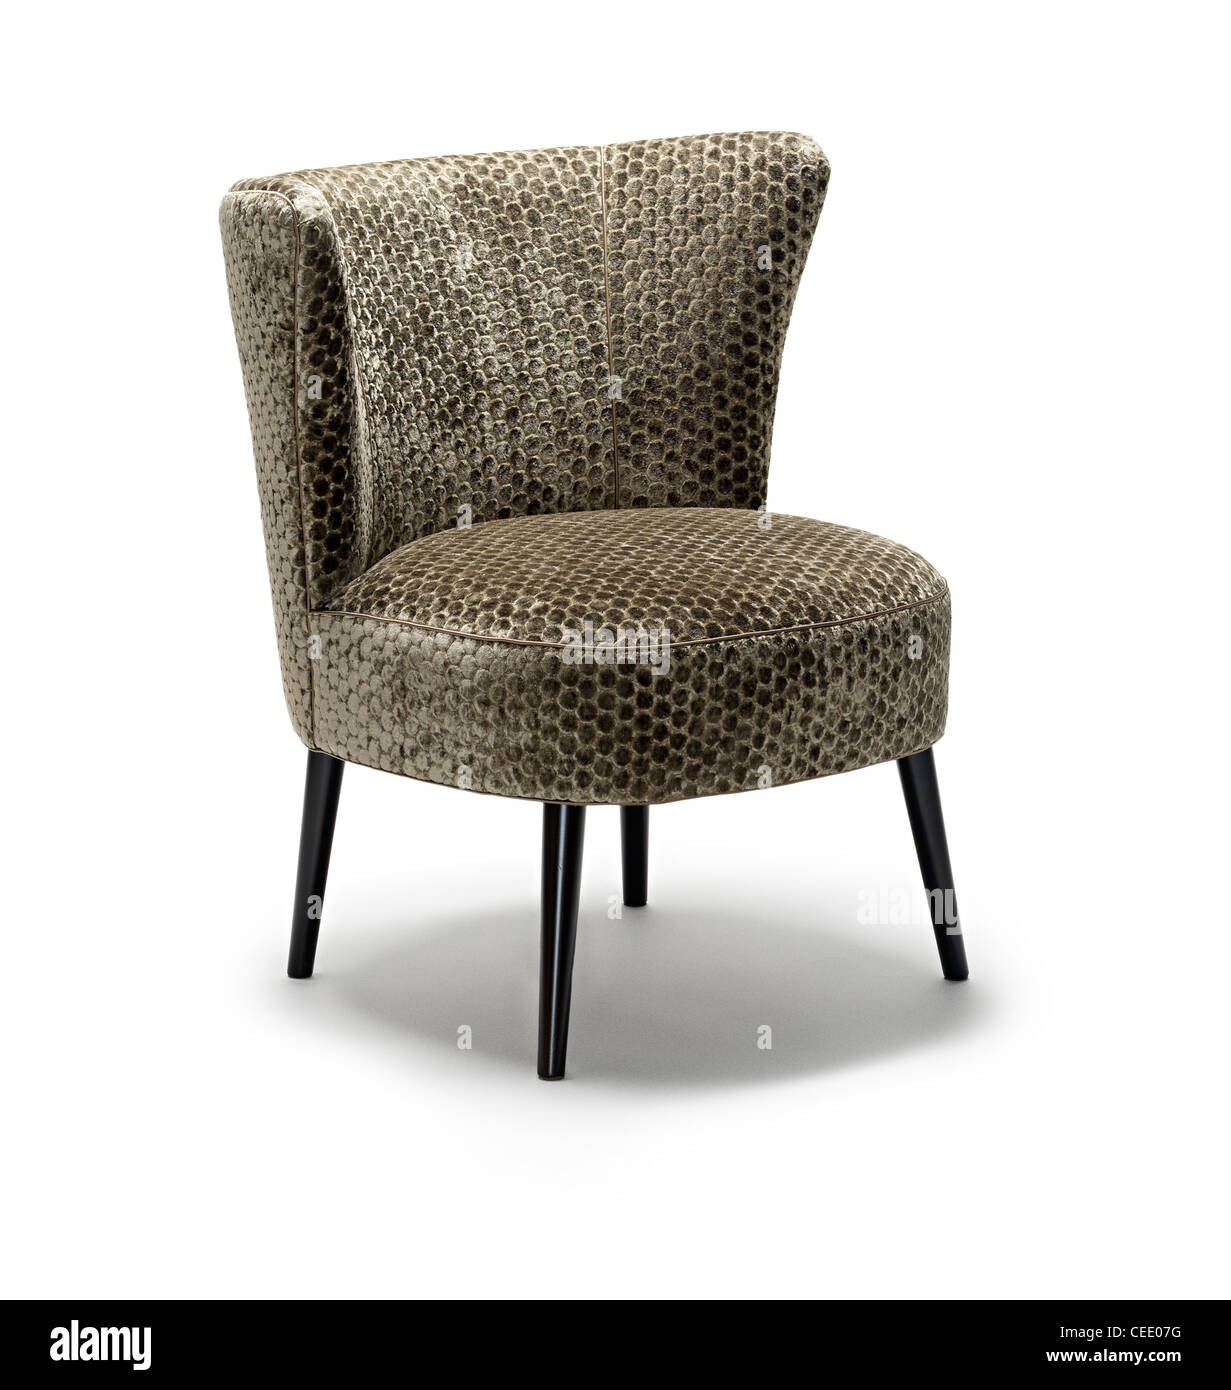 high backed chair wicker rocker stock photos images alamy occasional image